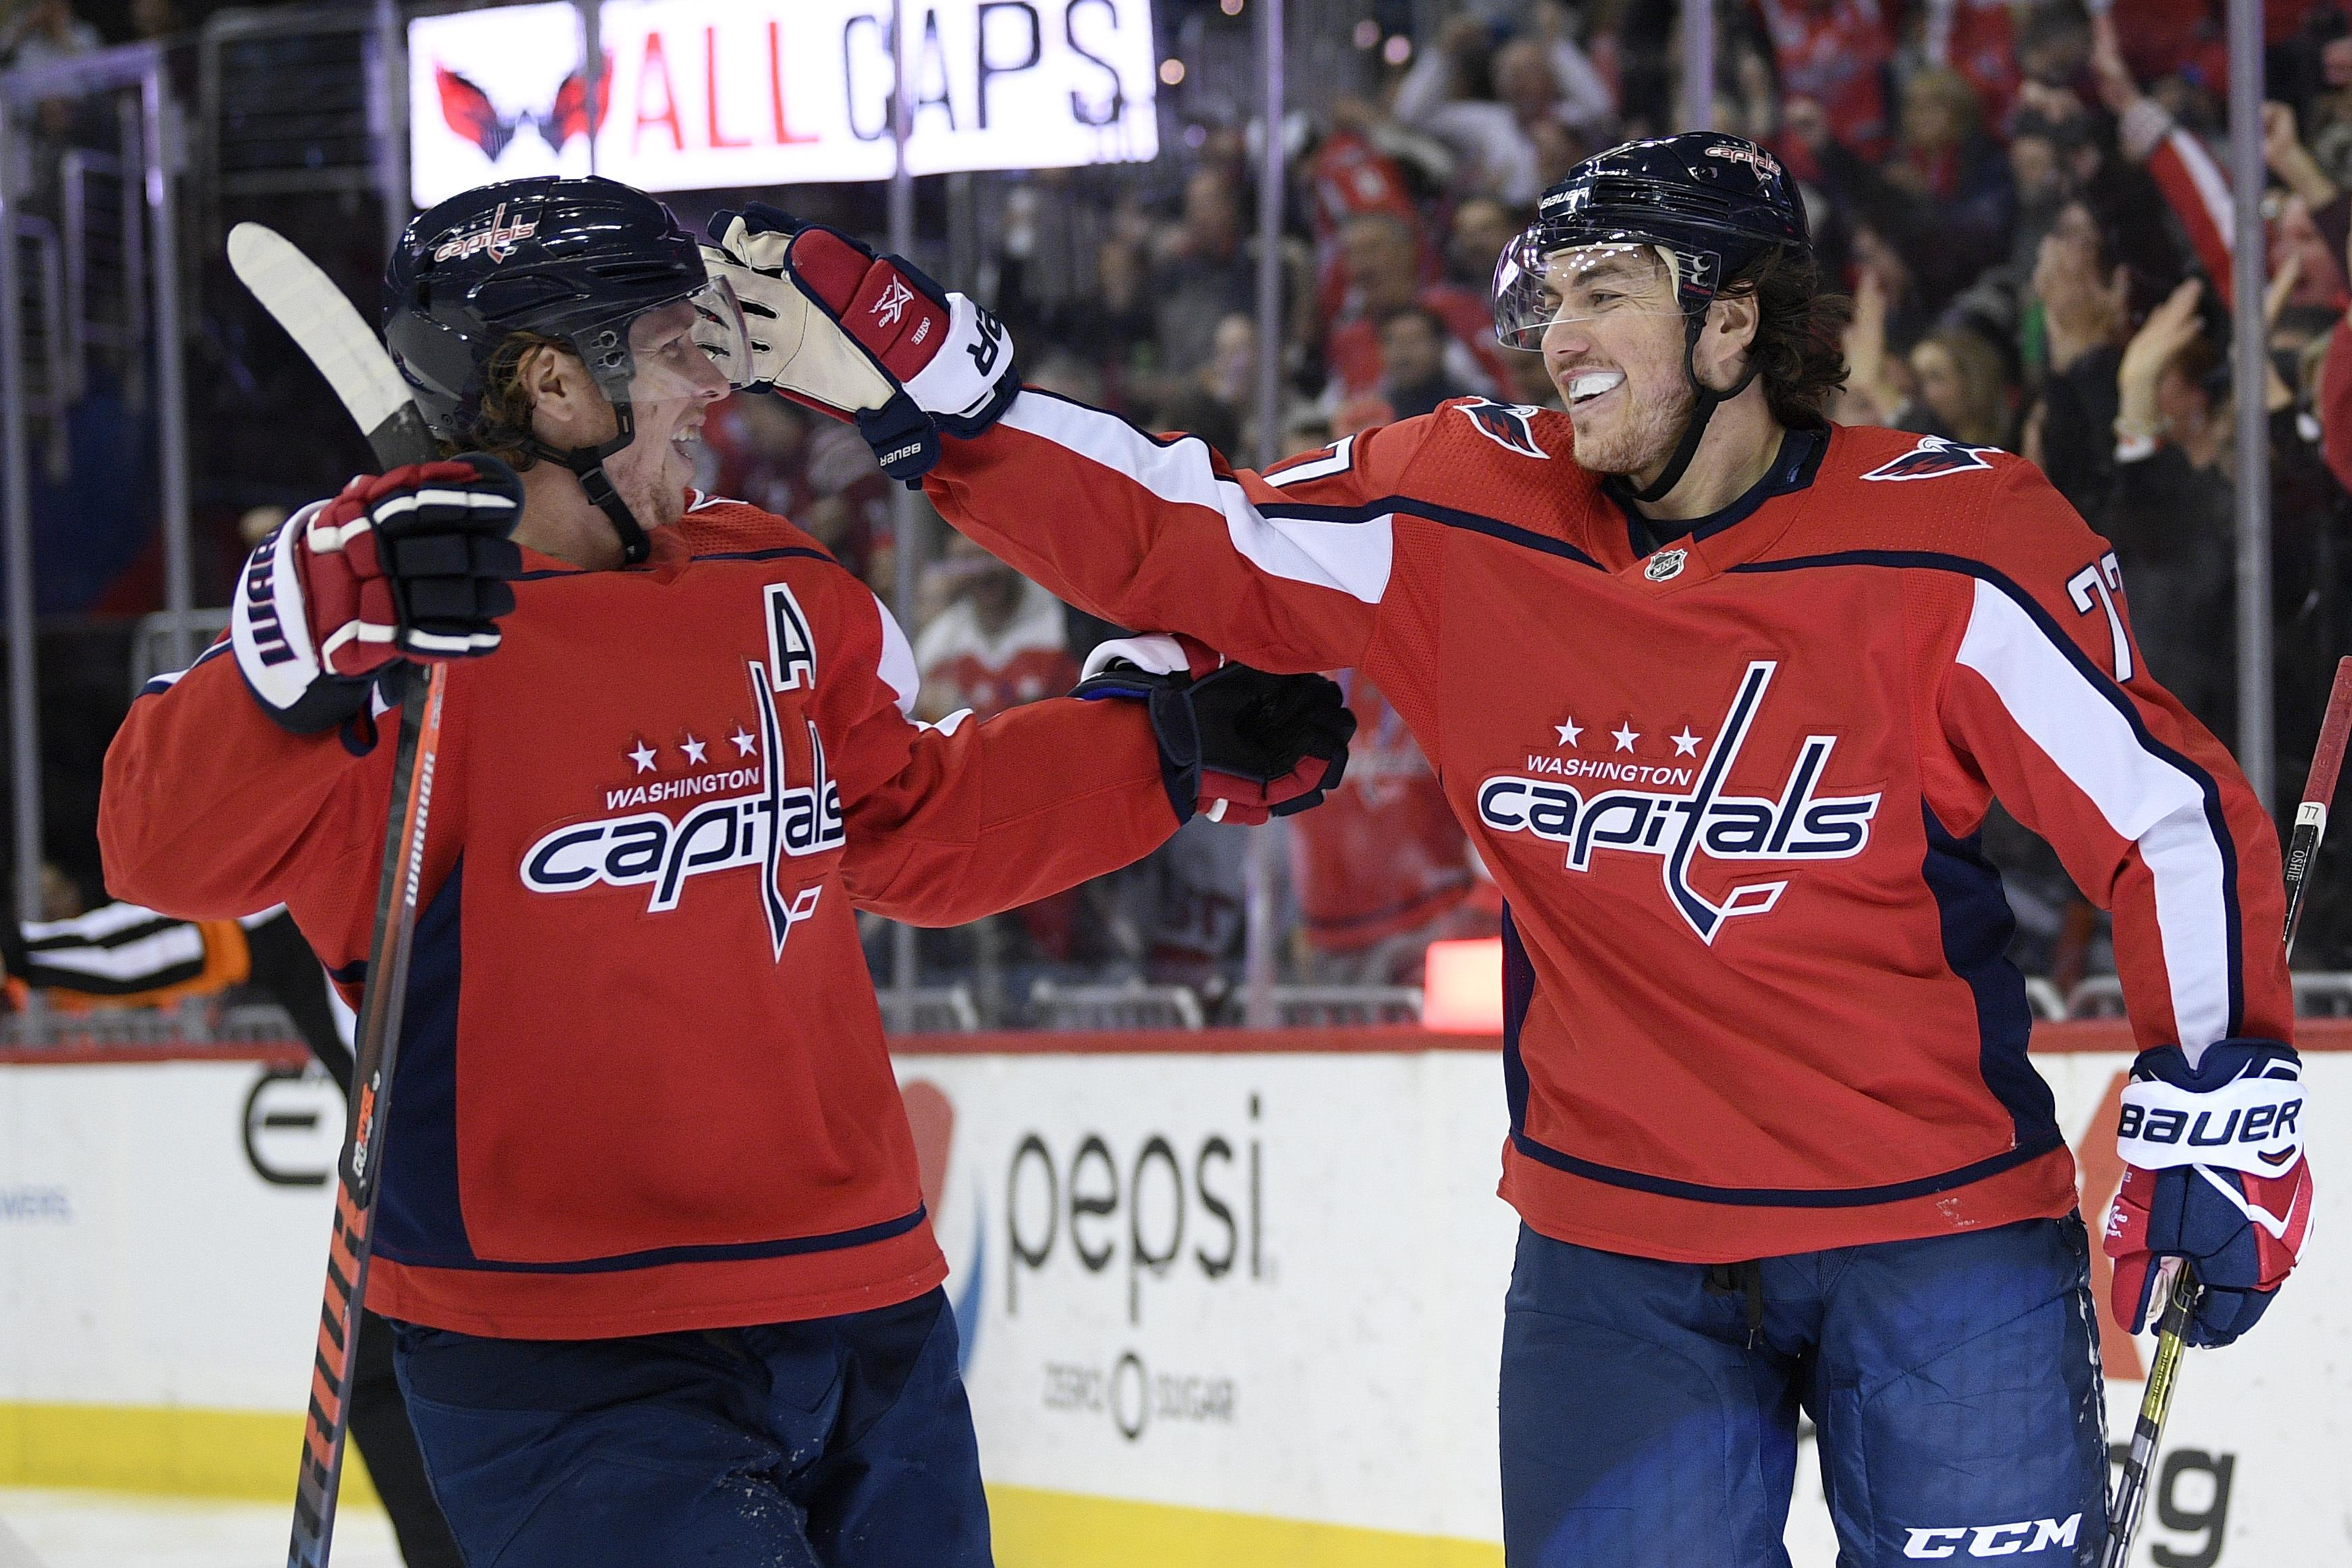 f638d6f5a4a Washington Capitals right wing T.J. Oshie (77) celebrates his goal with  center Nicklas Backstrom